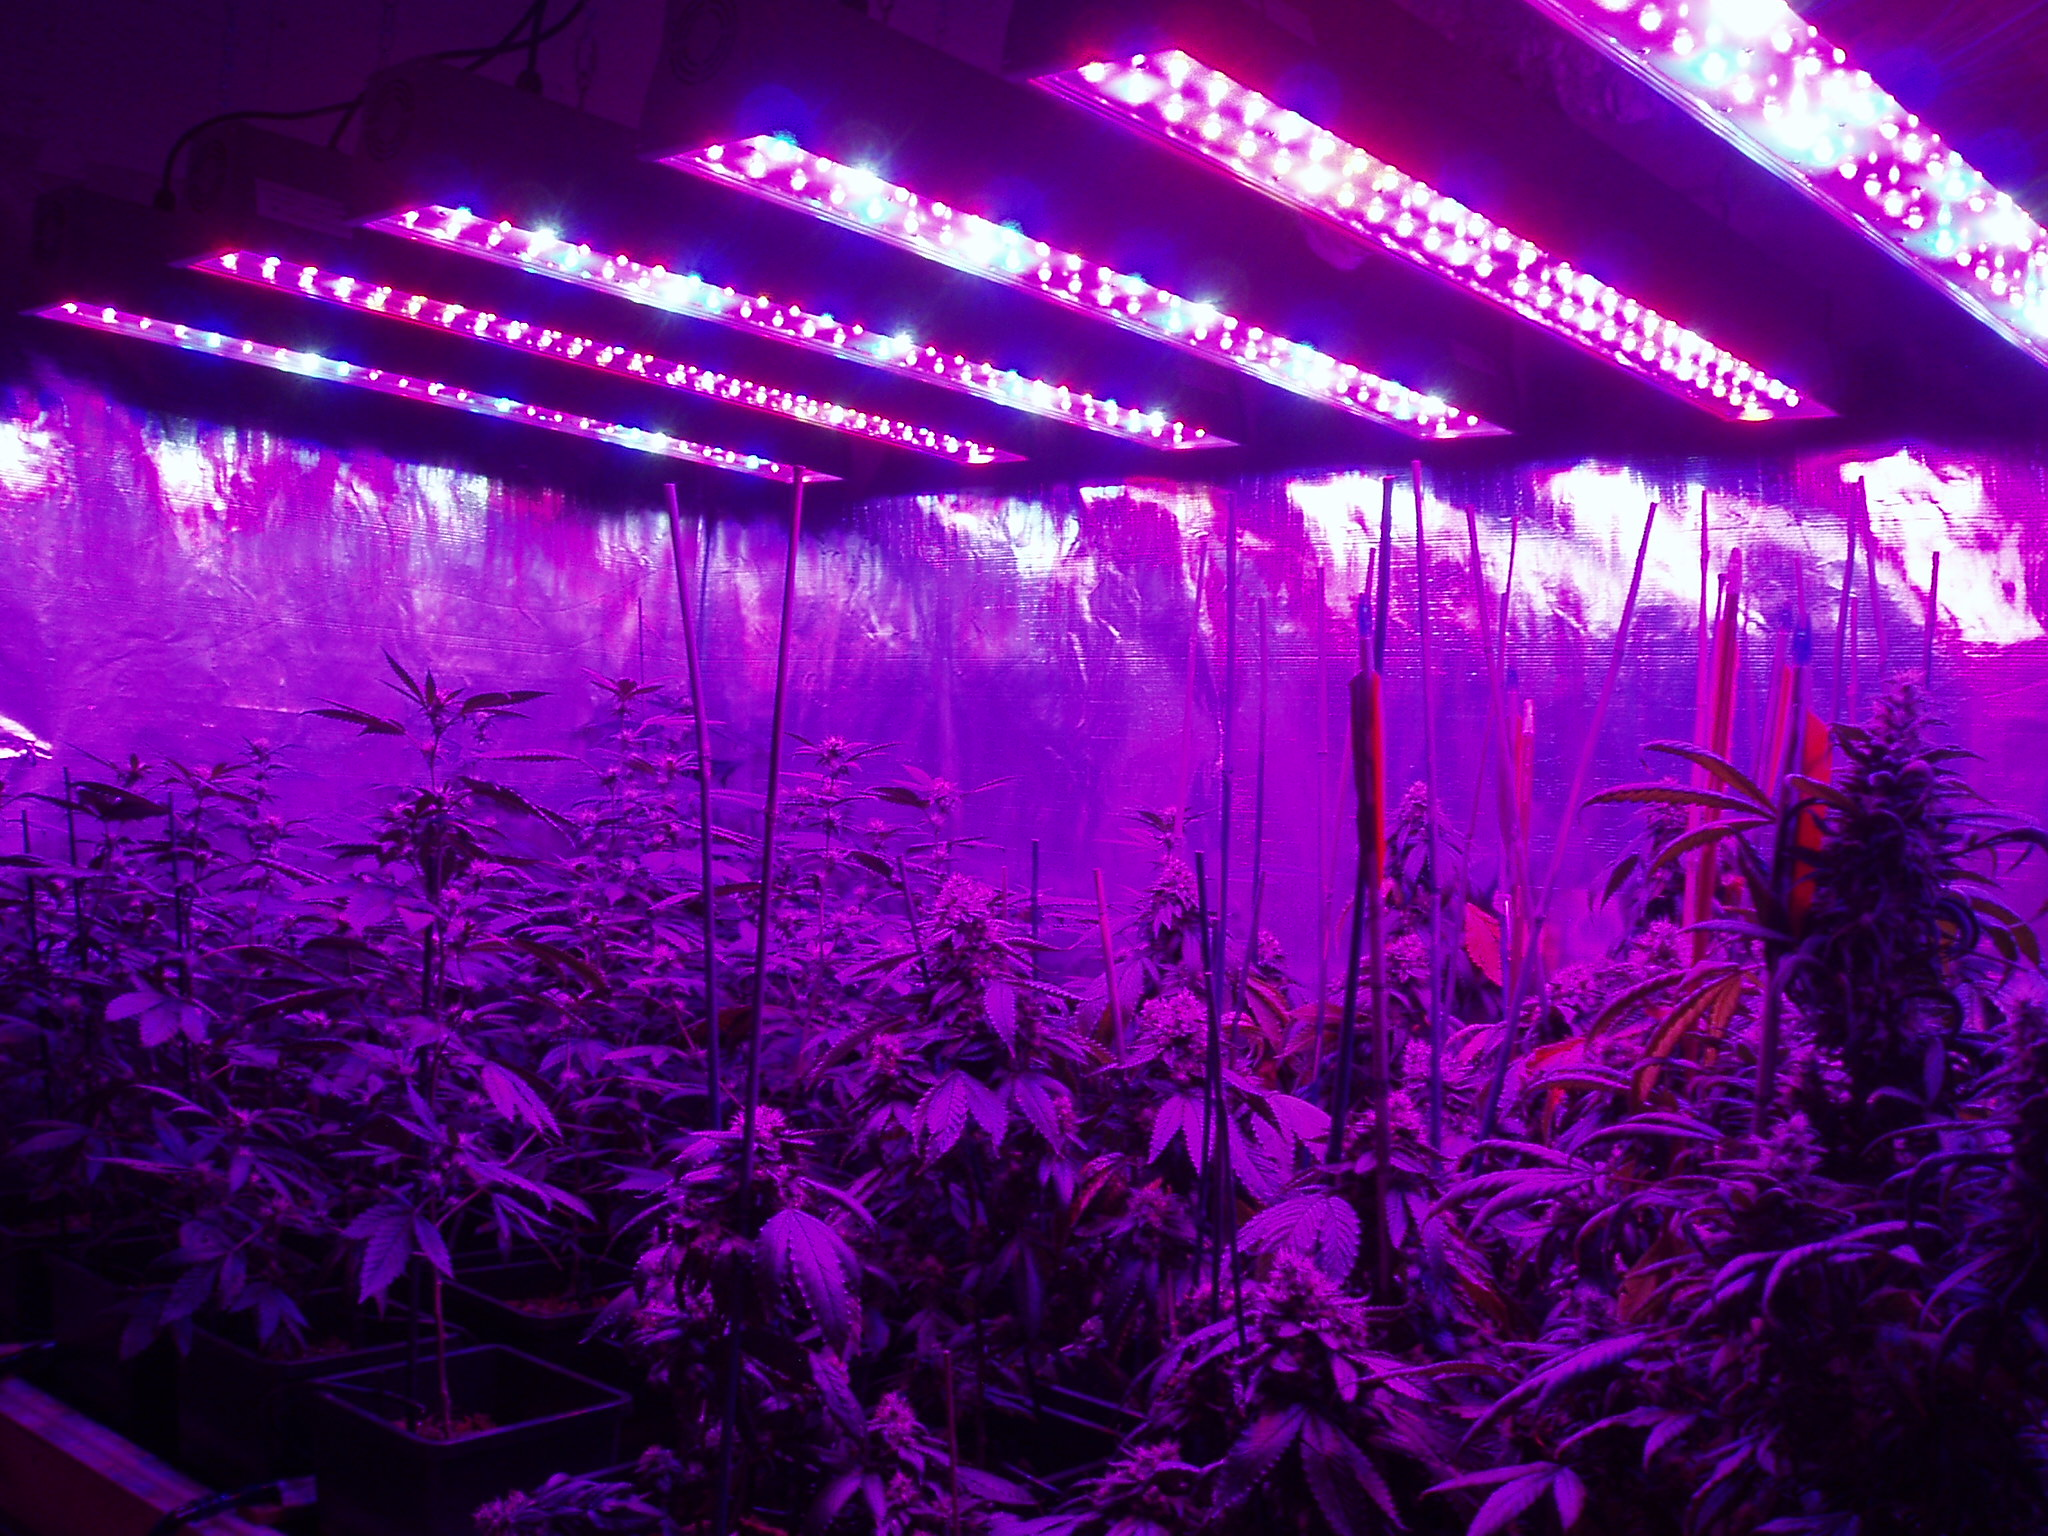 & Best LED Grow Lights for Weed on Amazon azcodes.com